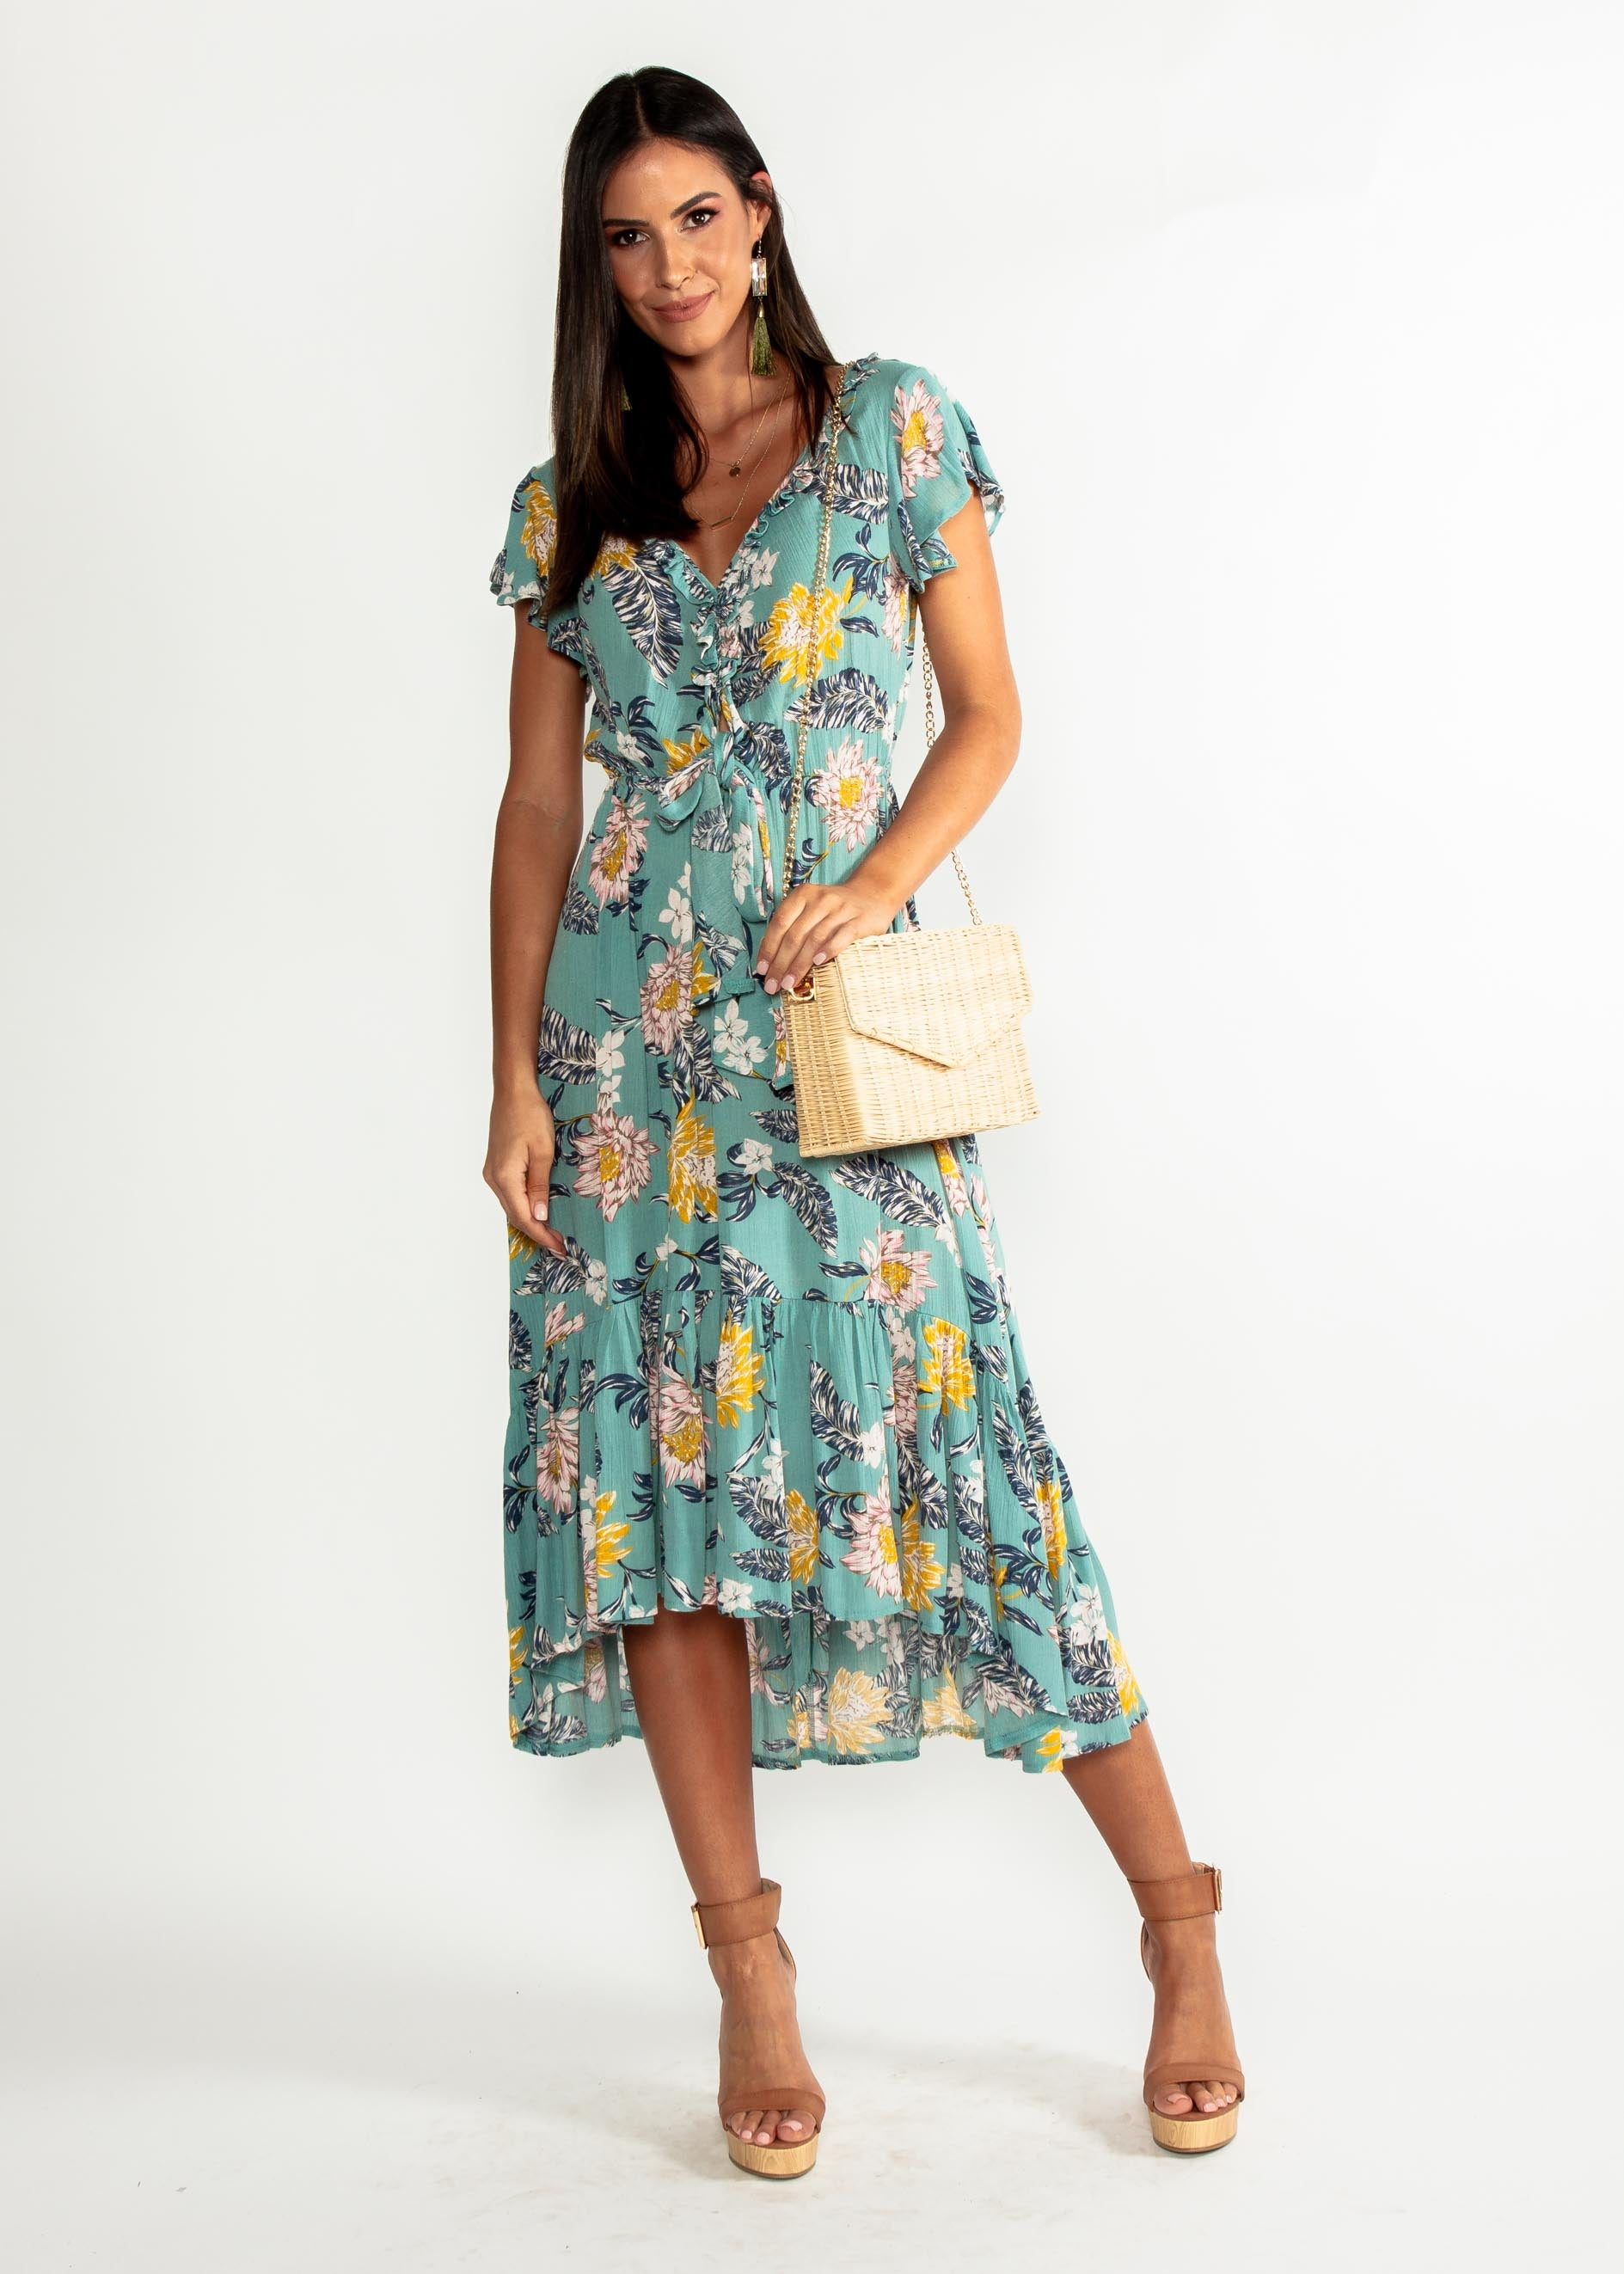 Marigold Tie Midi Dress - Mint Floral